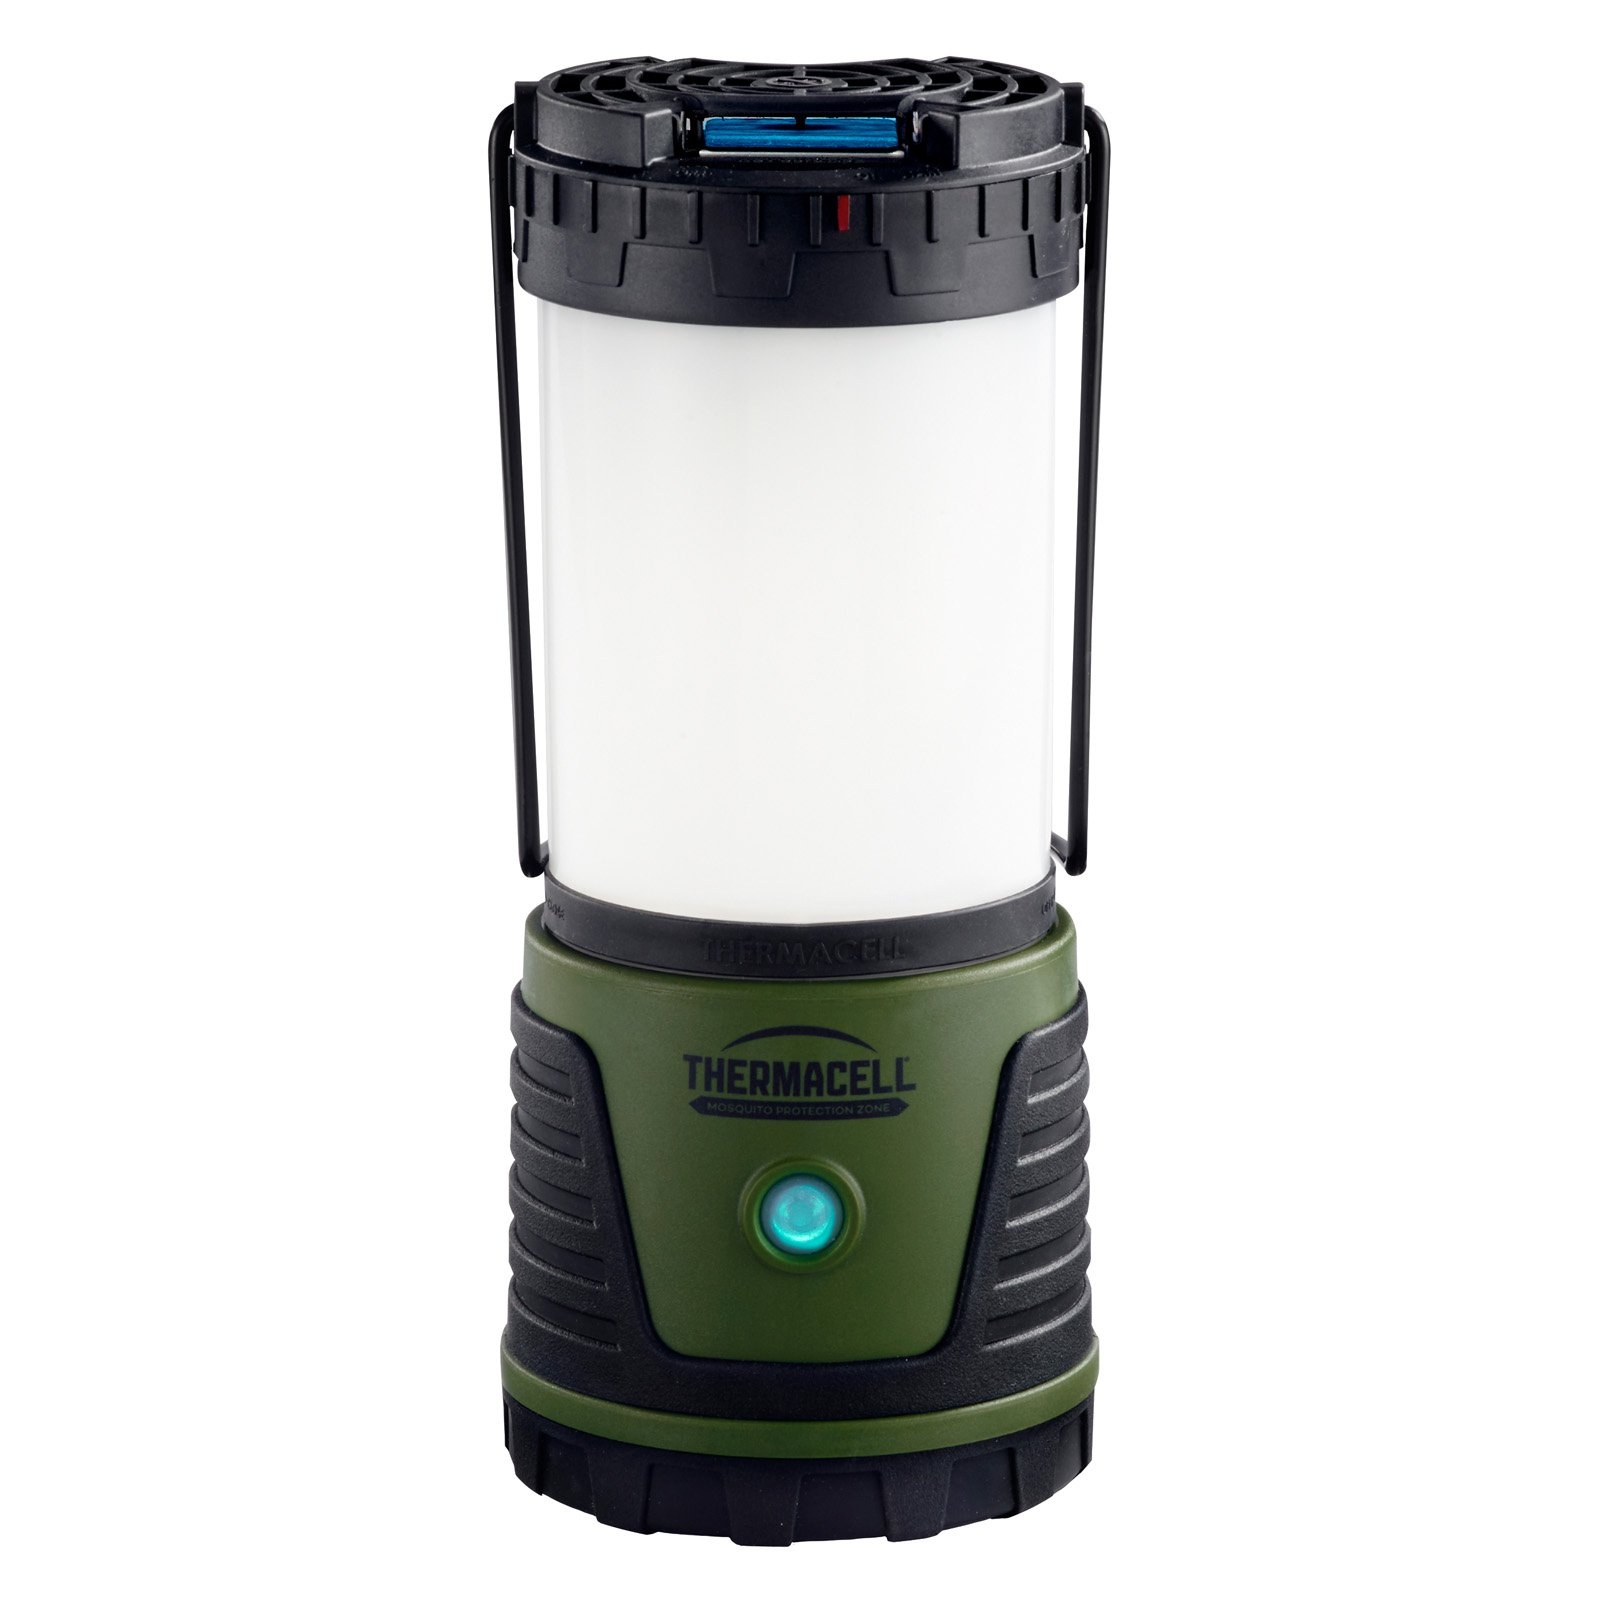 Thermacell Trailblazer Portable Outdoor Mosquito Bug Fly Repeller Camp Lantern by Thermacell